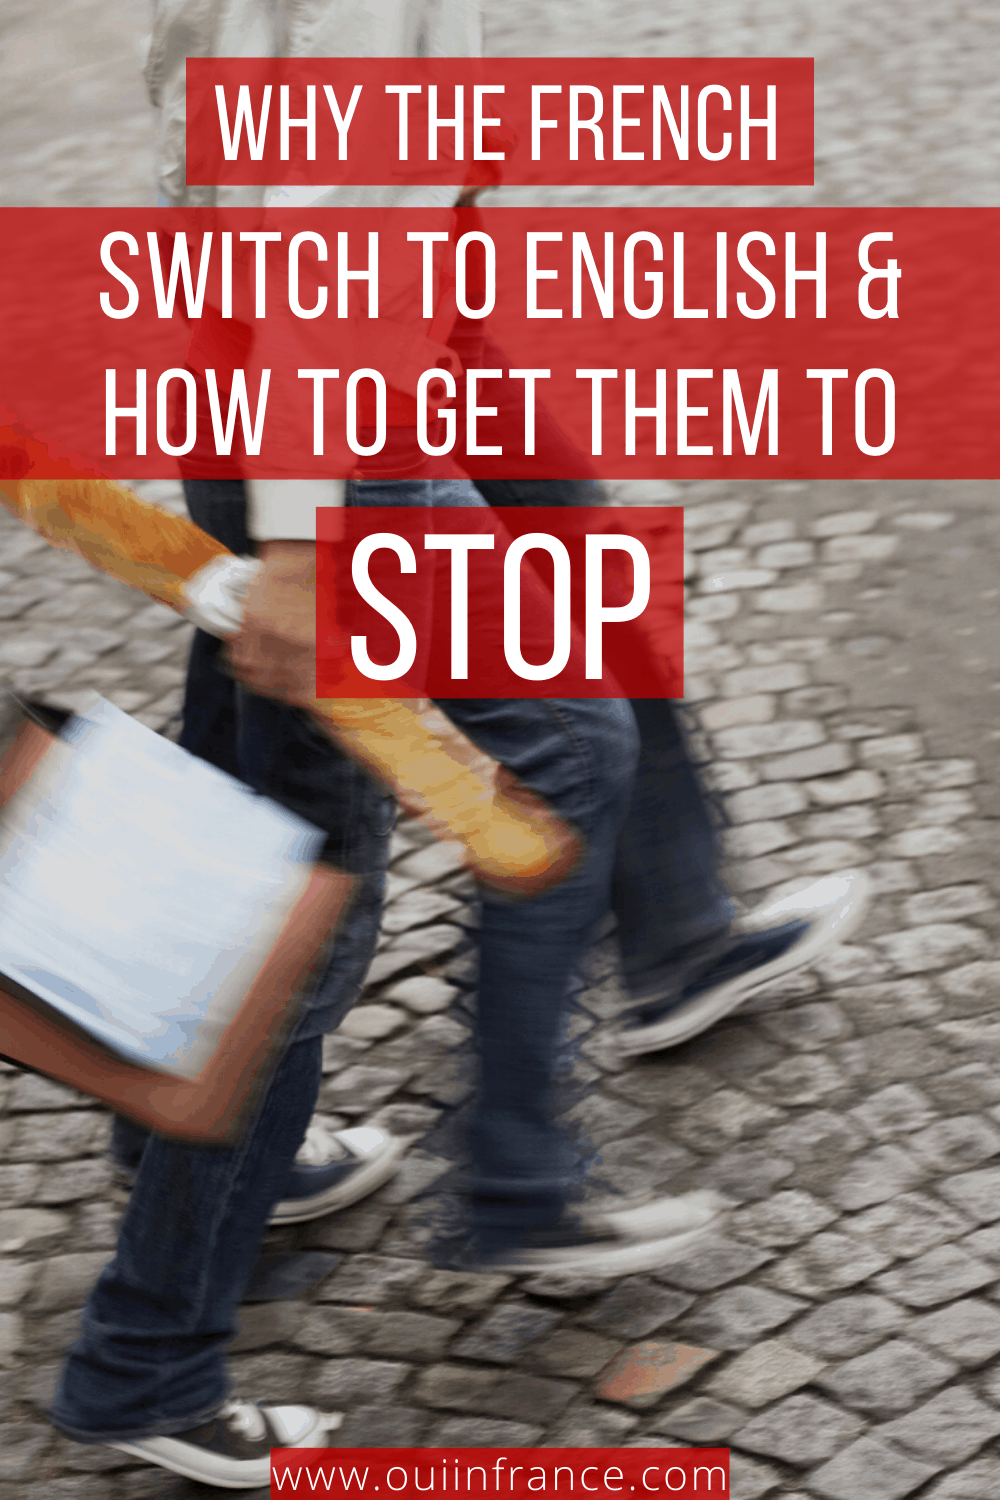 Why the French switch to English and how to get them to